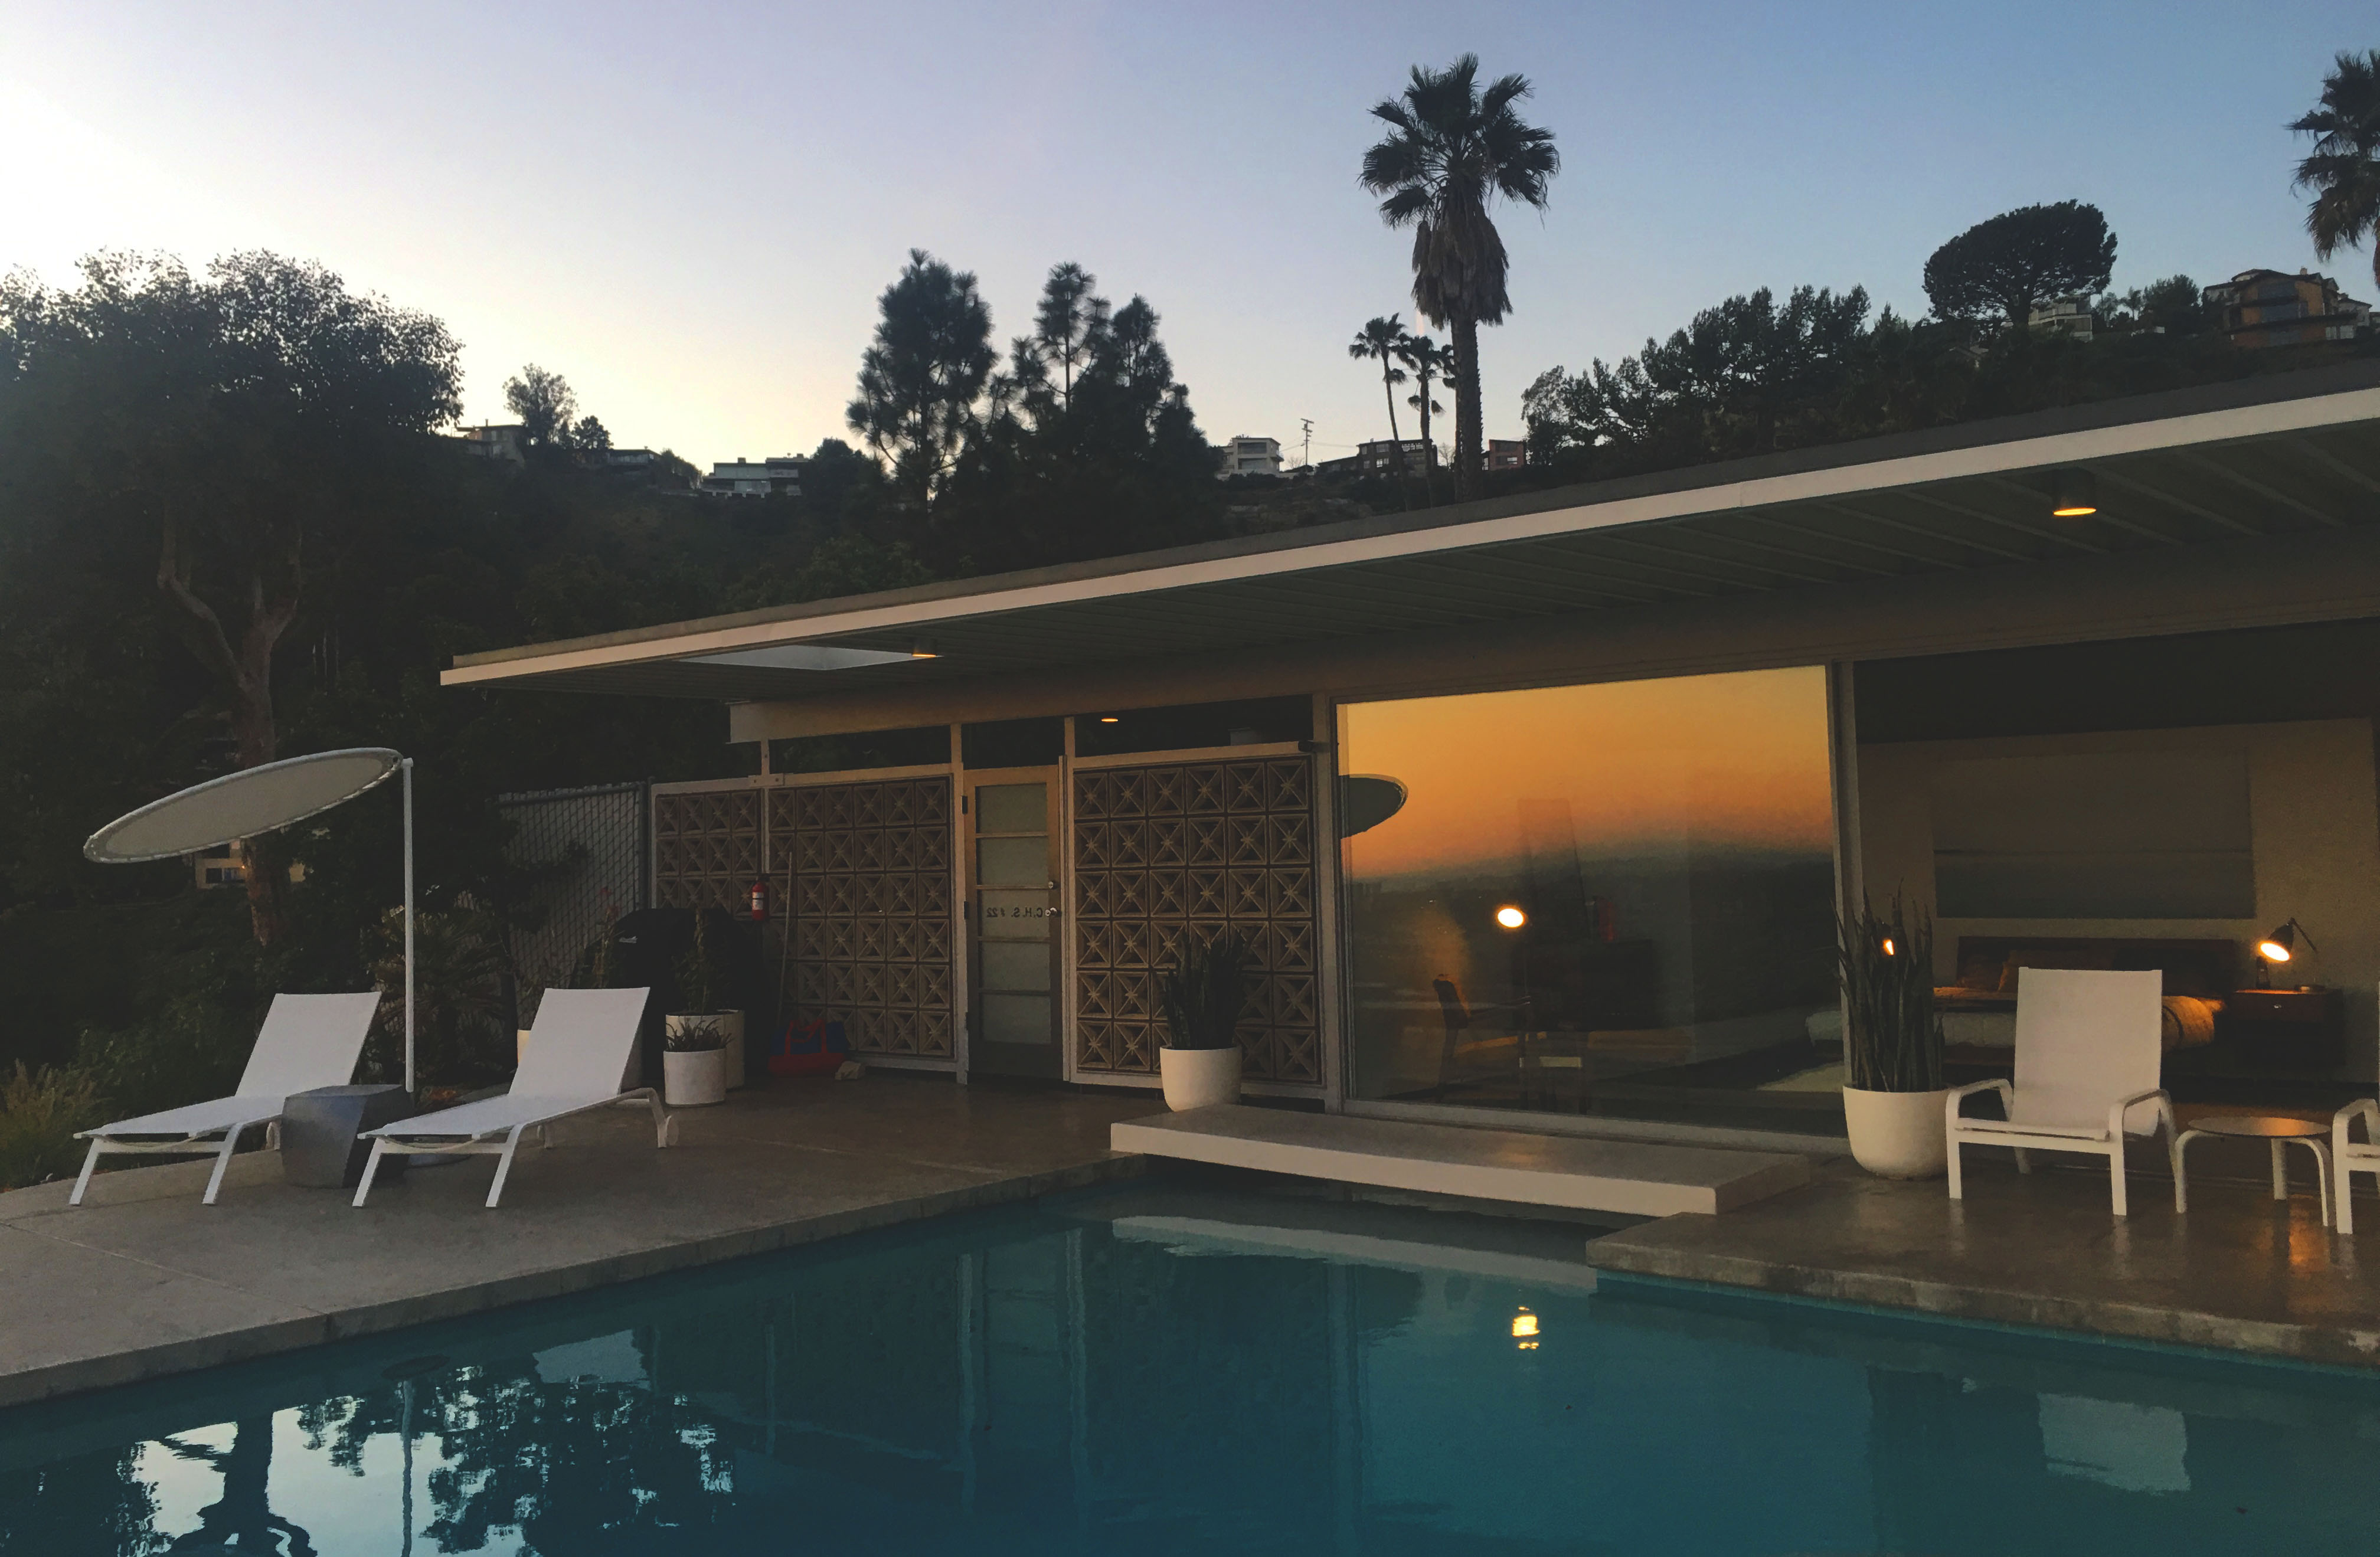 Modern Architecture Los Angeles los angeles modern architecture: where to find home tours